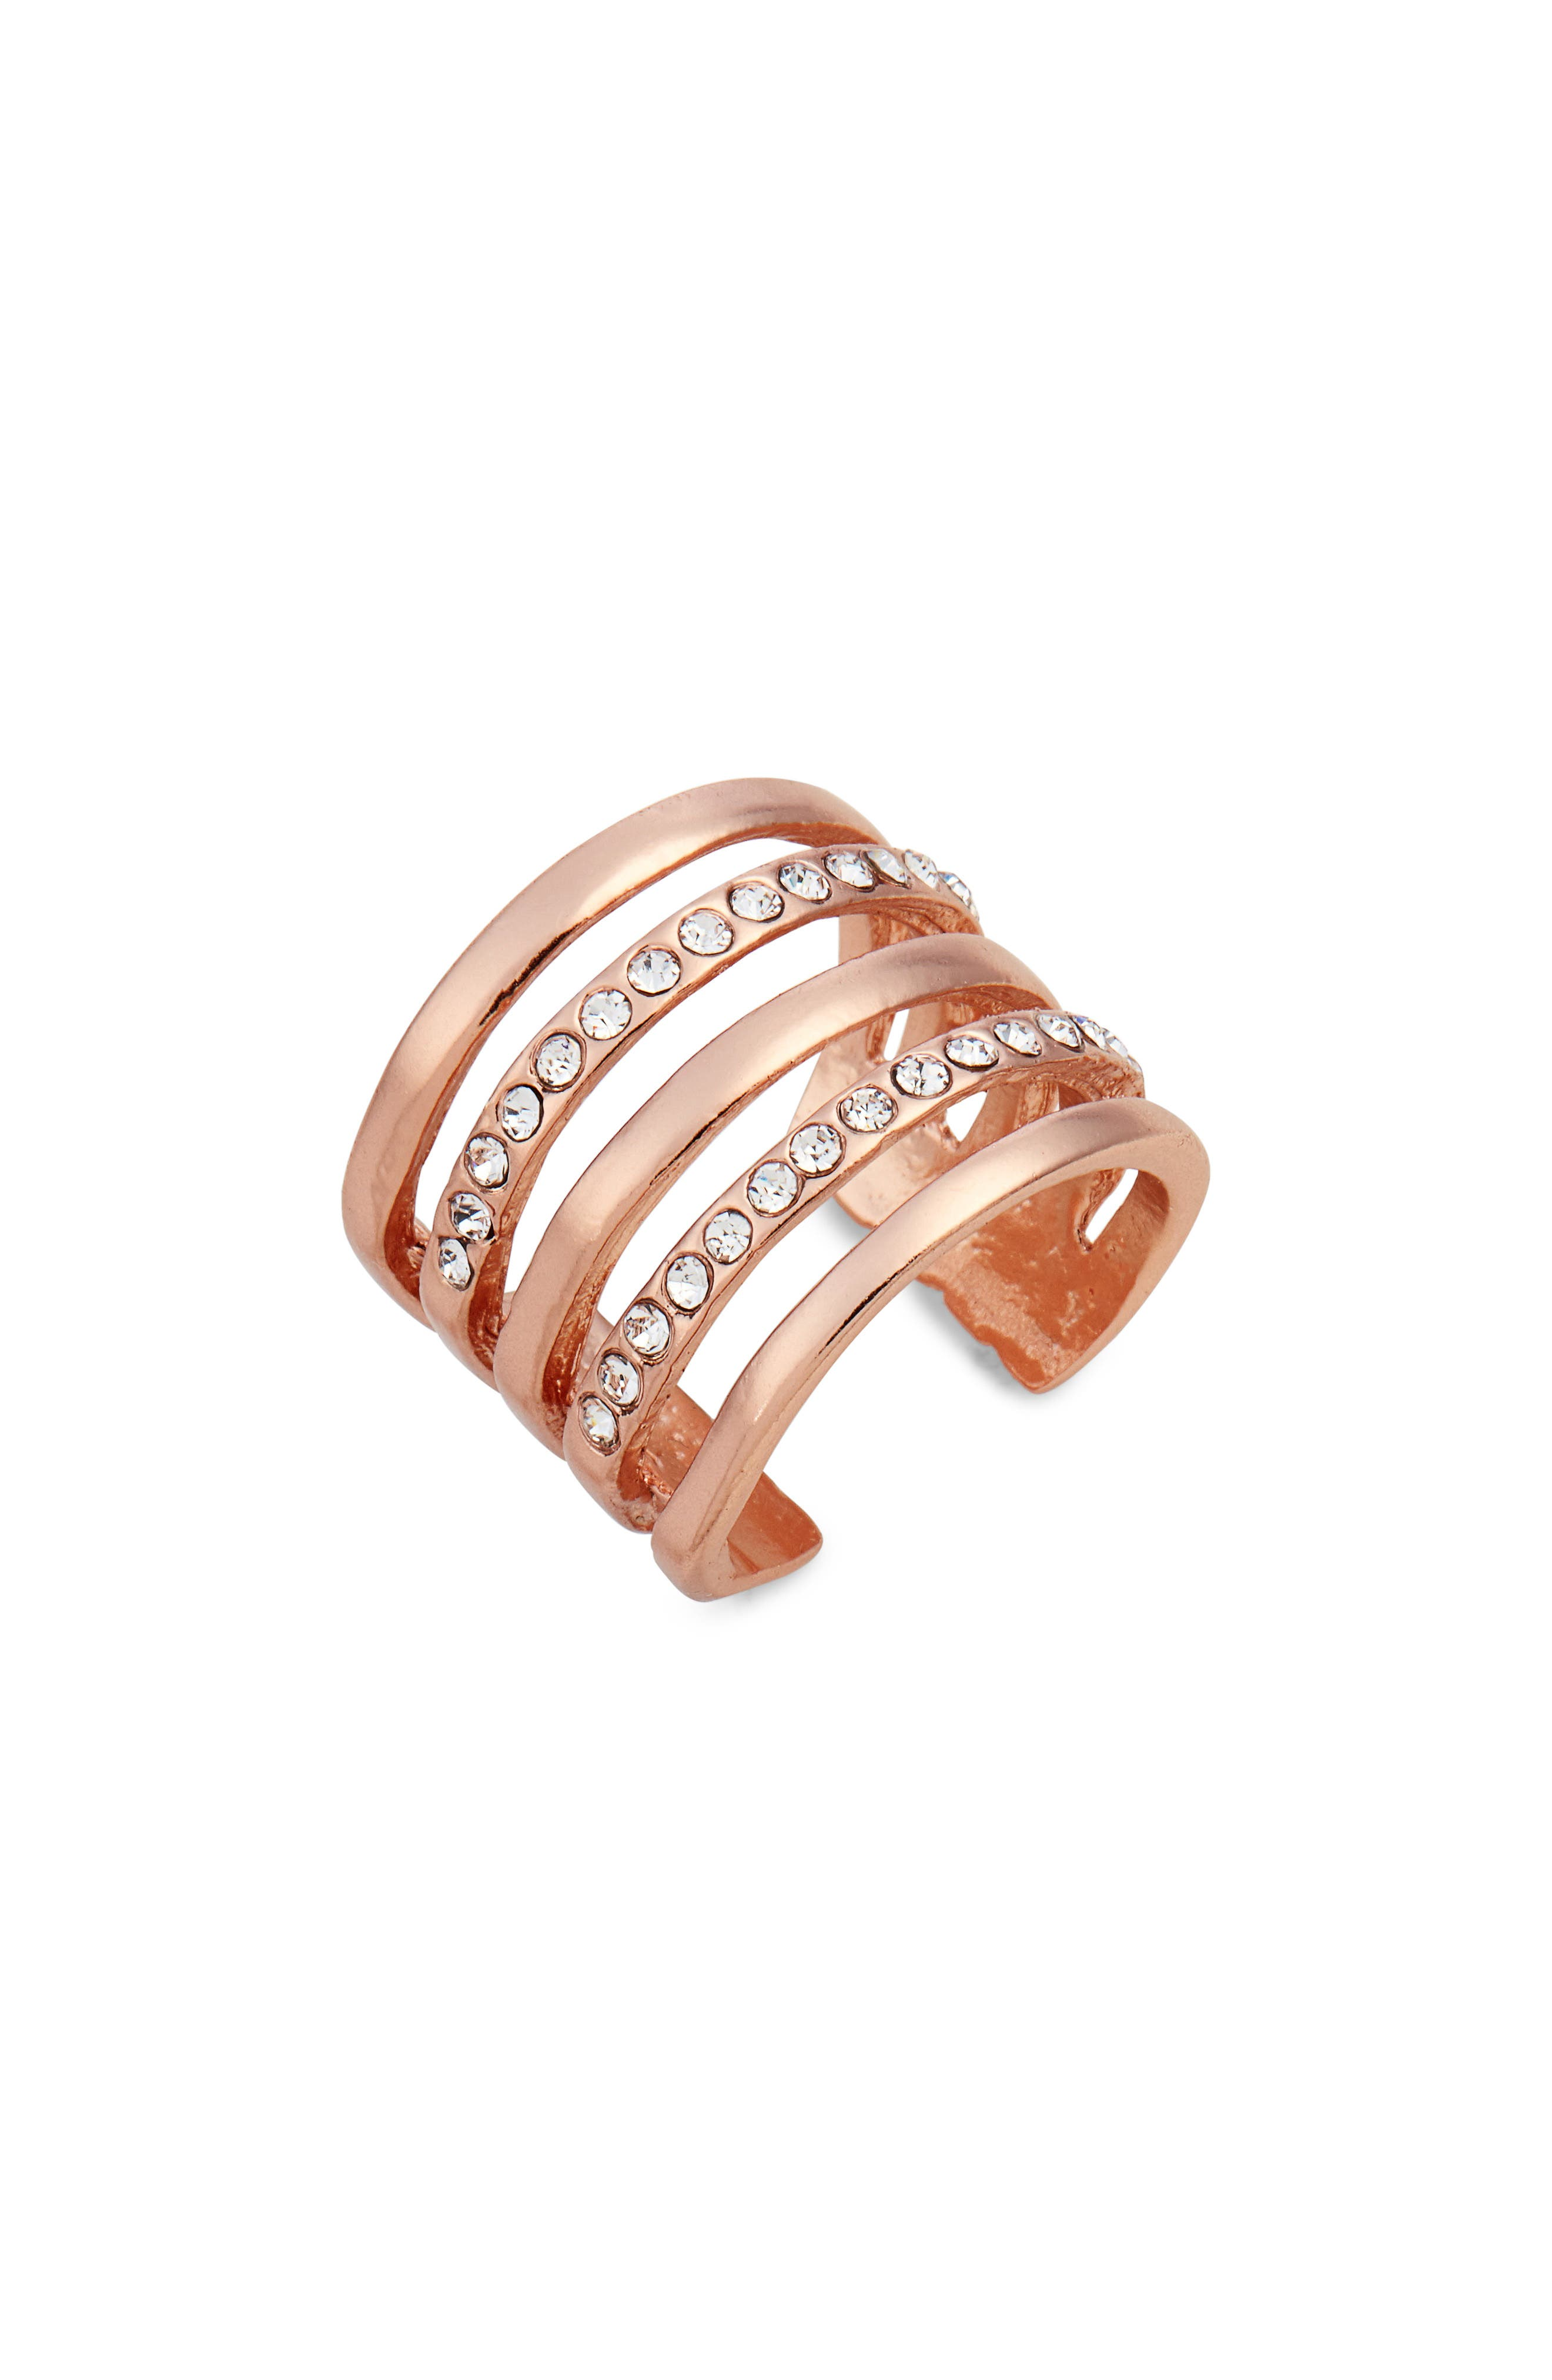 Claire Cage Ring,                         Main,                         color, Rose Gold